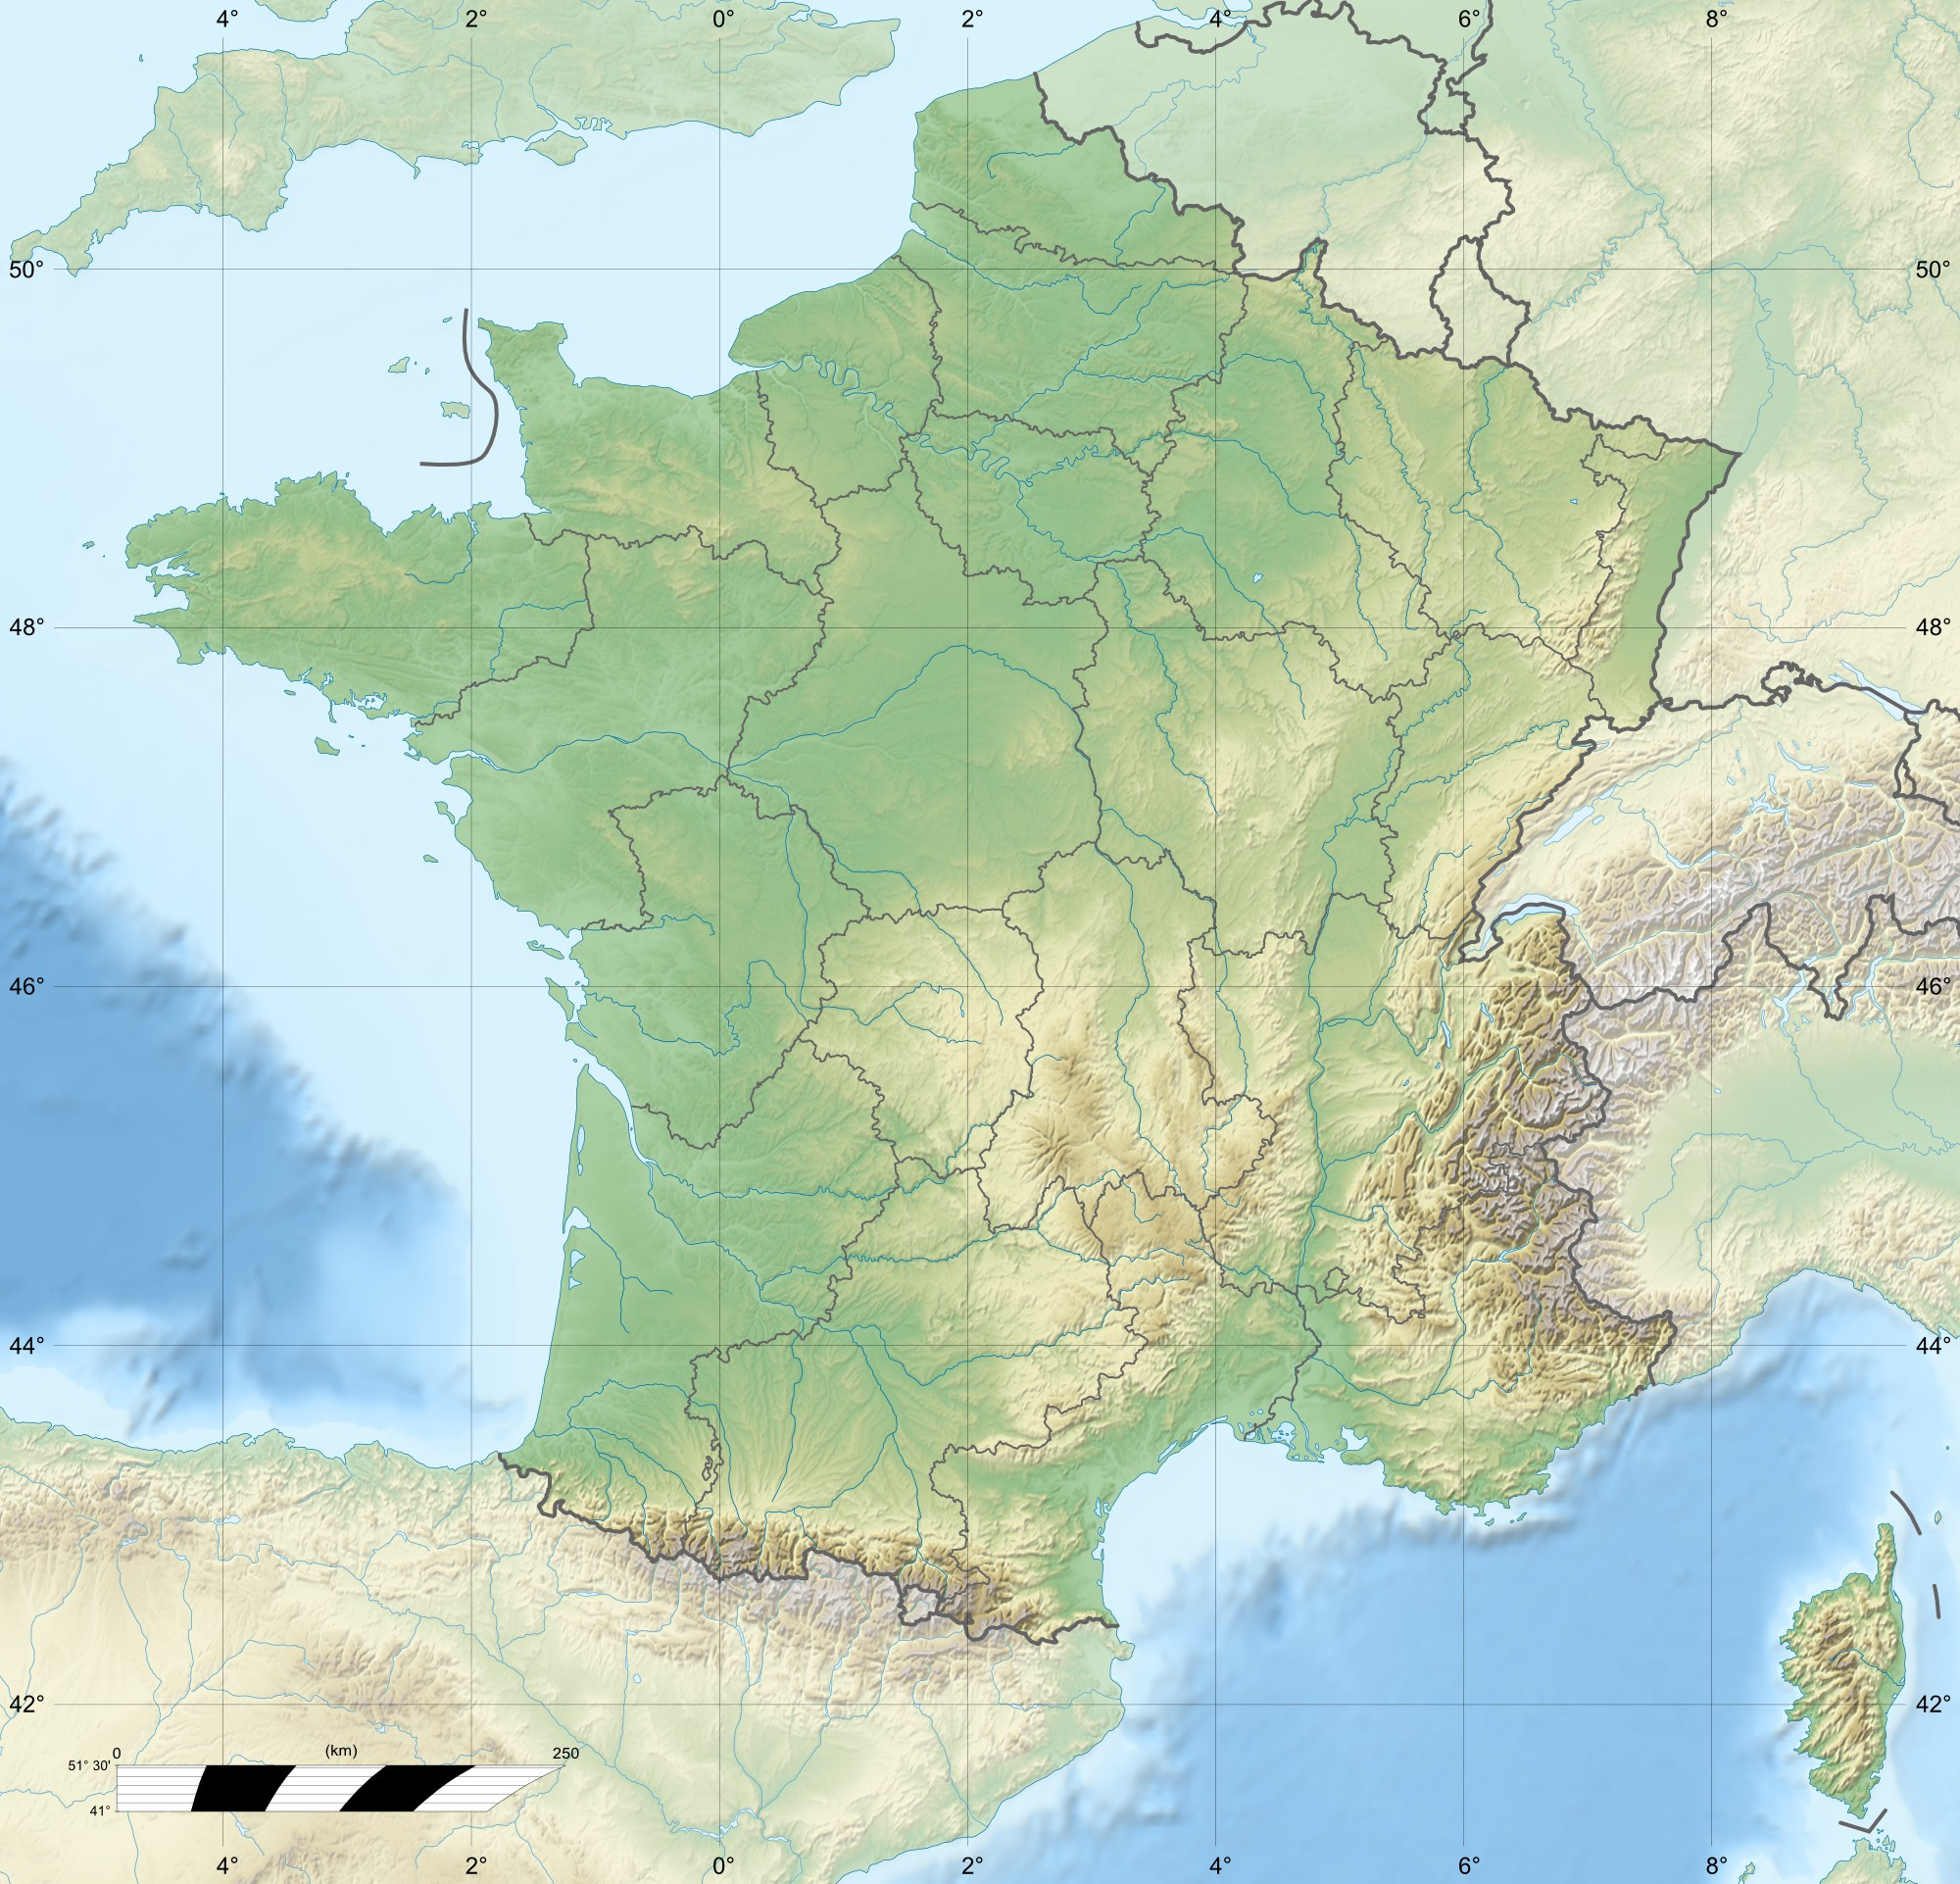 Ifsi Aulnay Sous Bois - Maps of France Detailed map of France in English Tourist map of France France road map